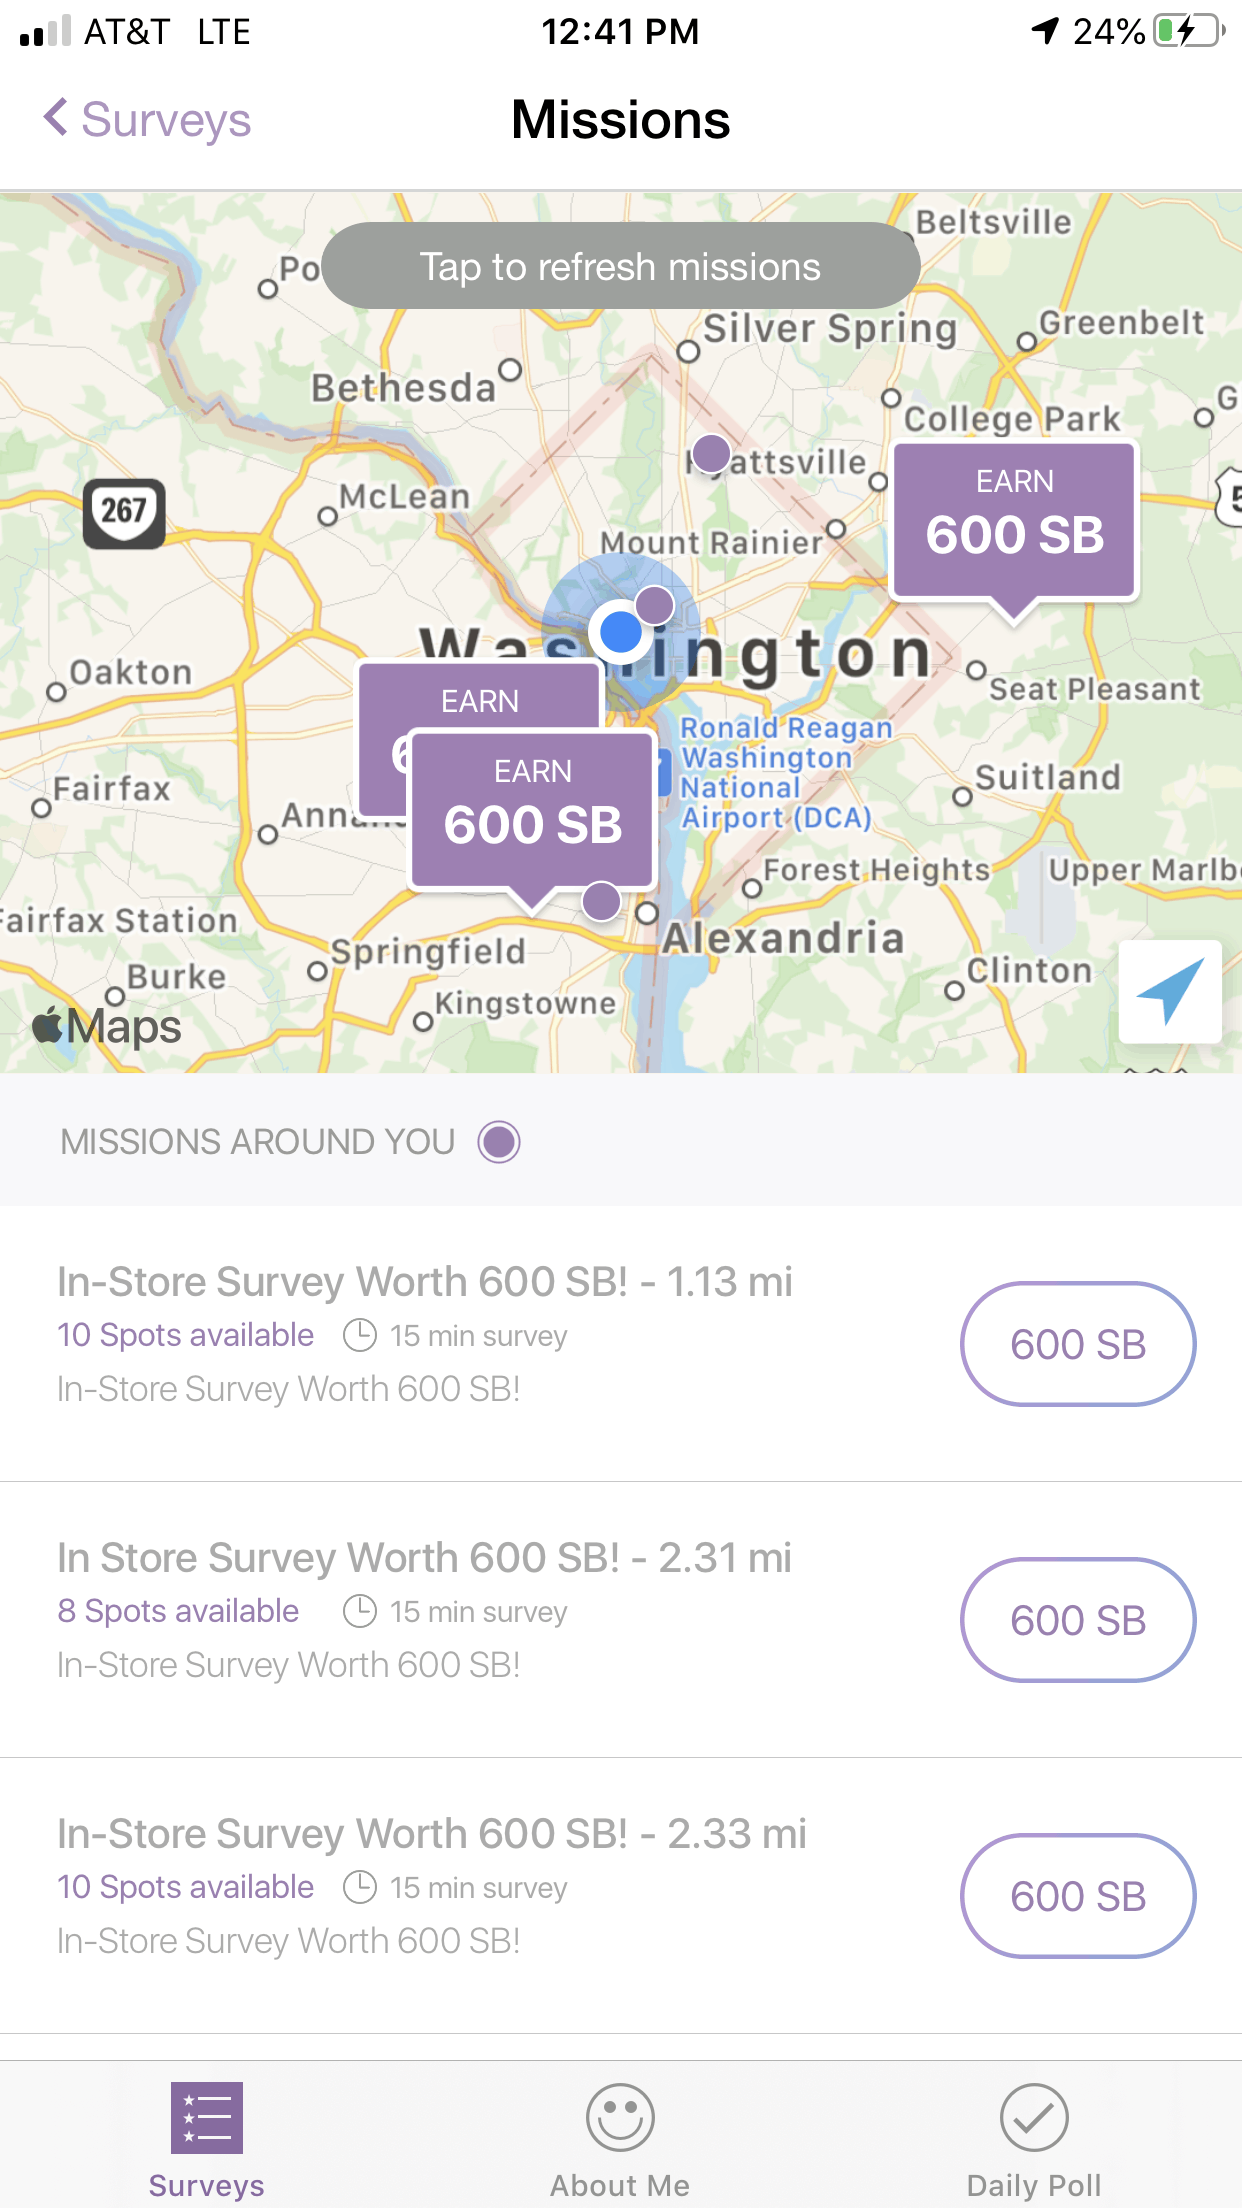 Swagbucks Missions — Map